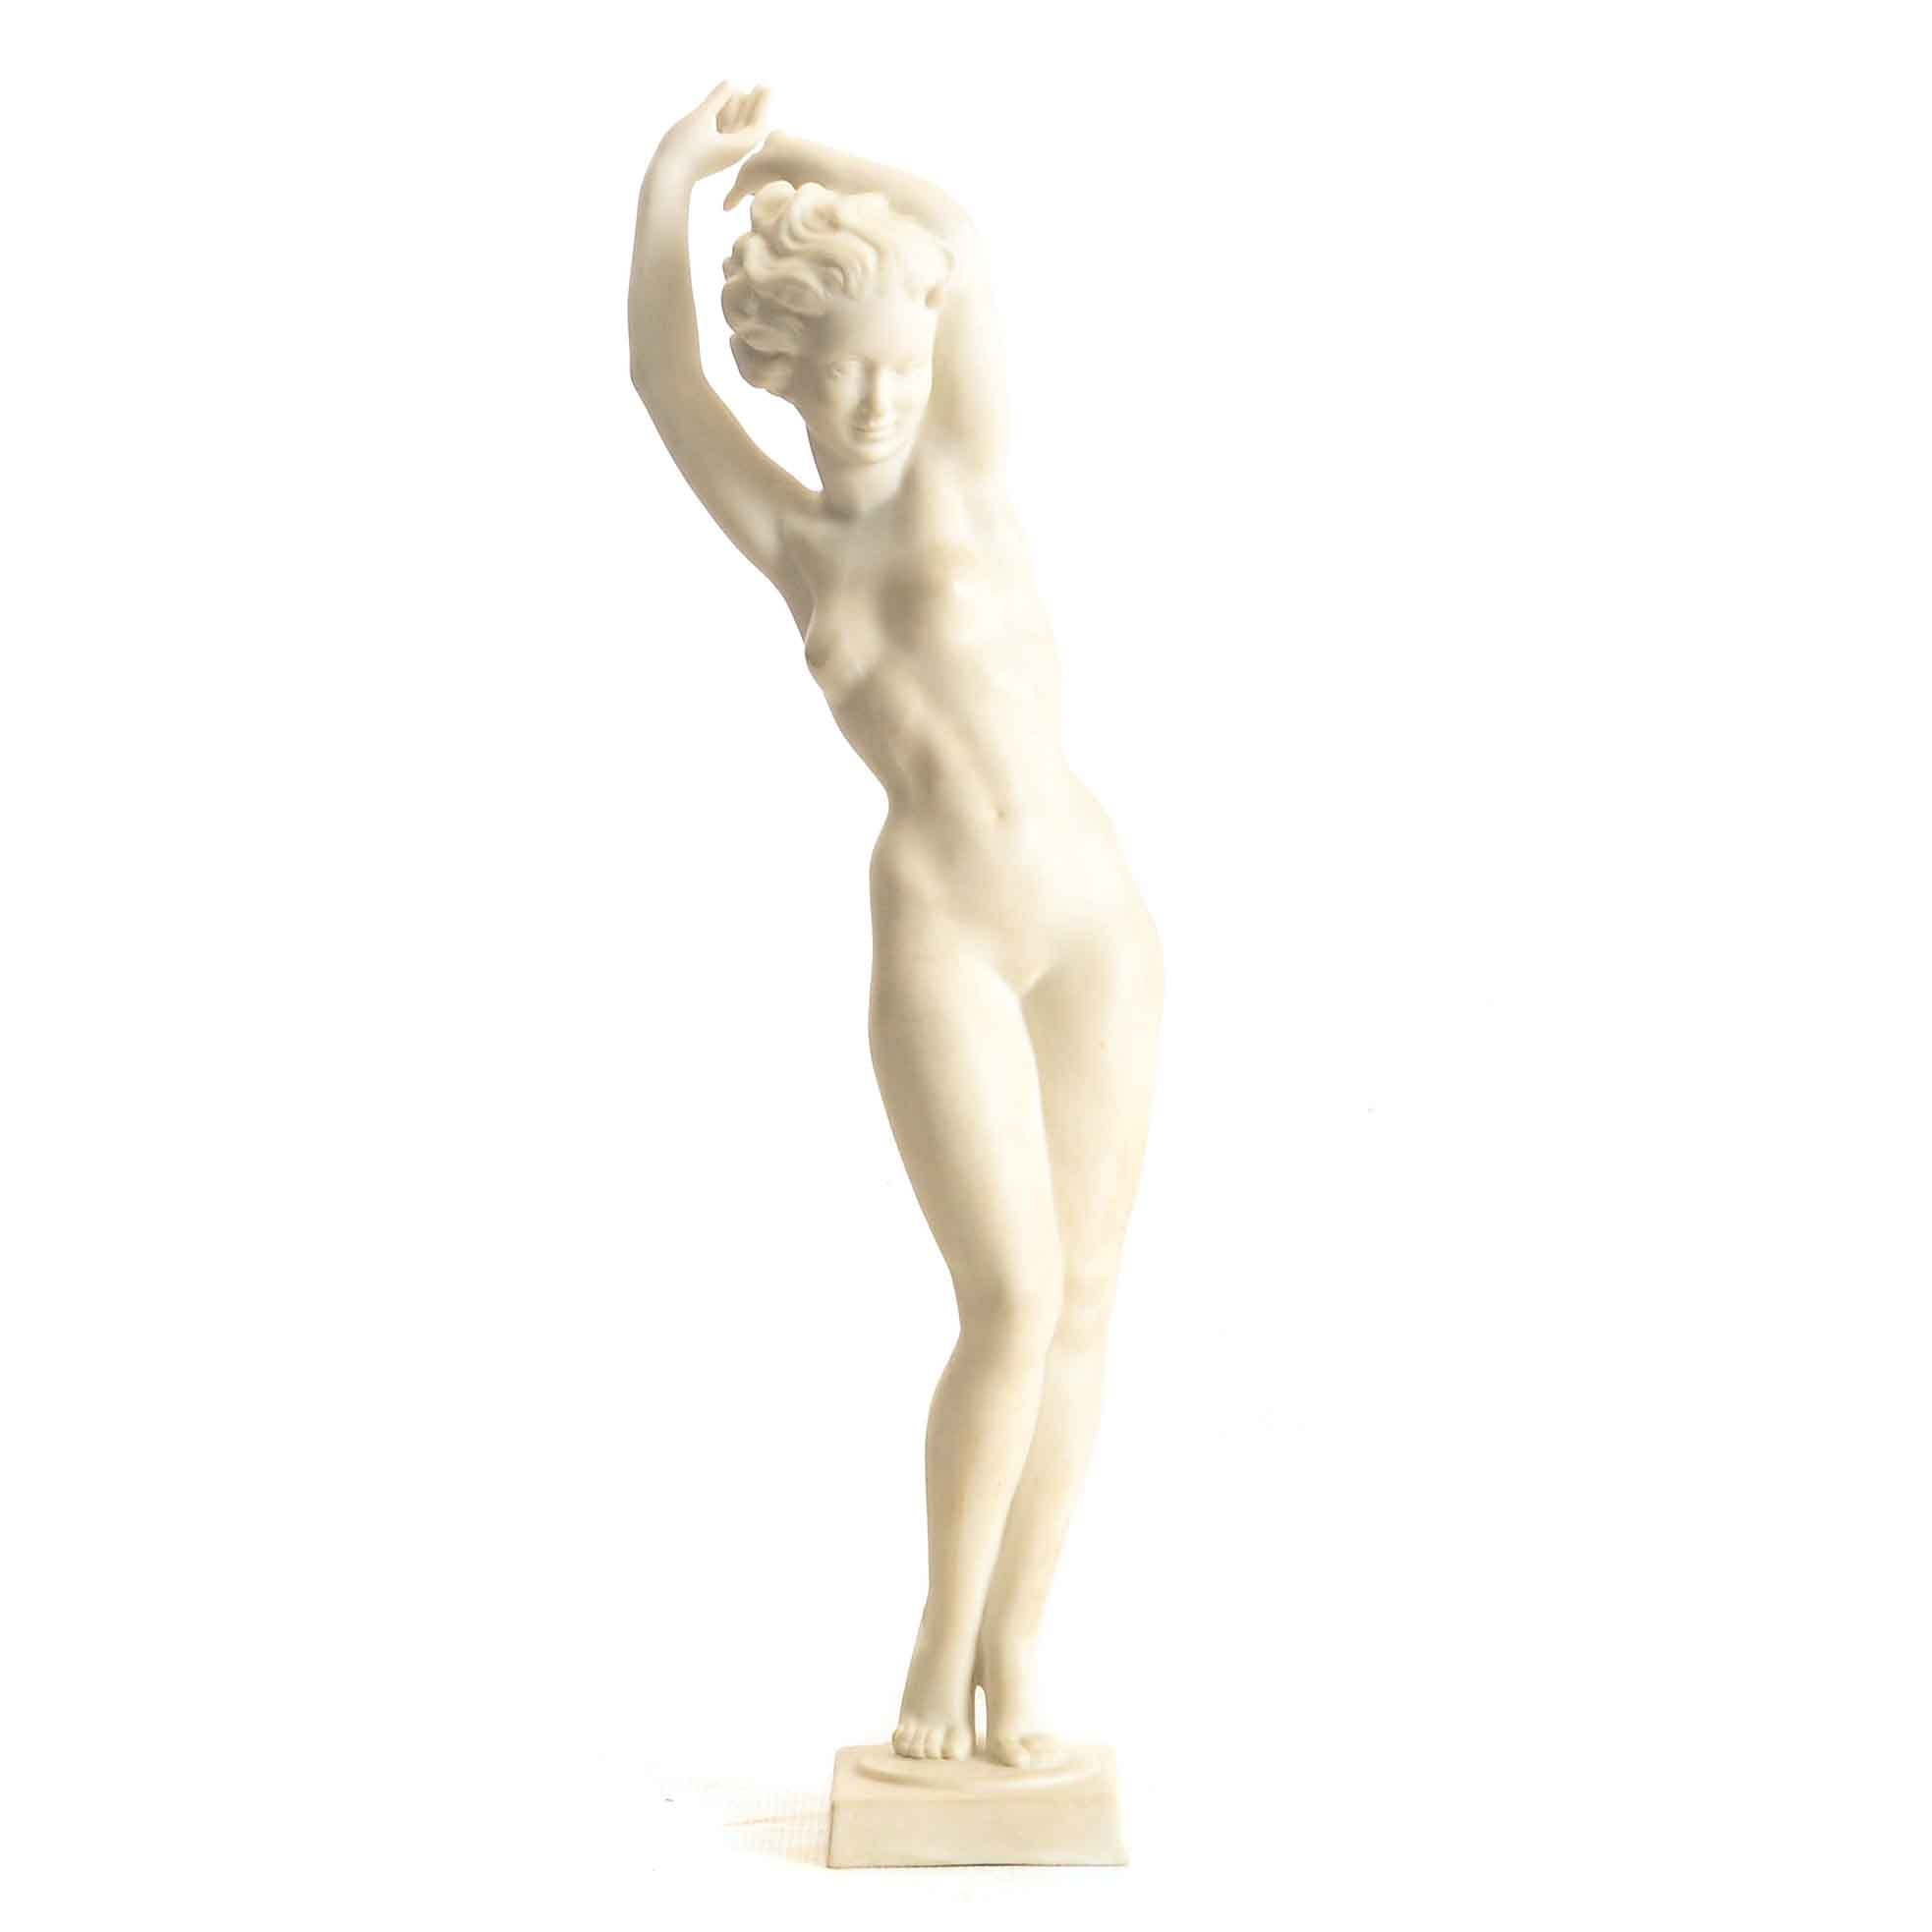 Art Deco Style Nude Figure by Hutschenreuther